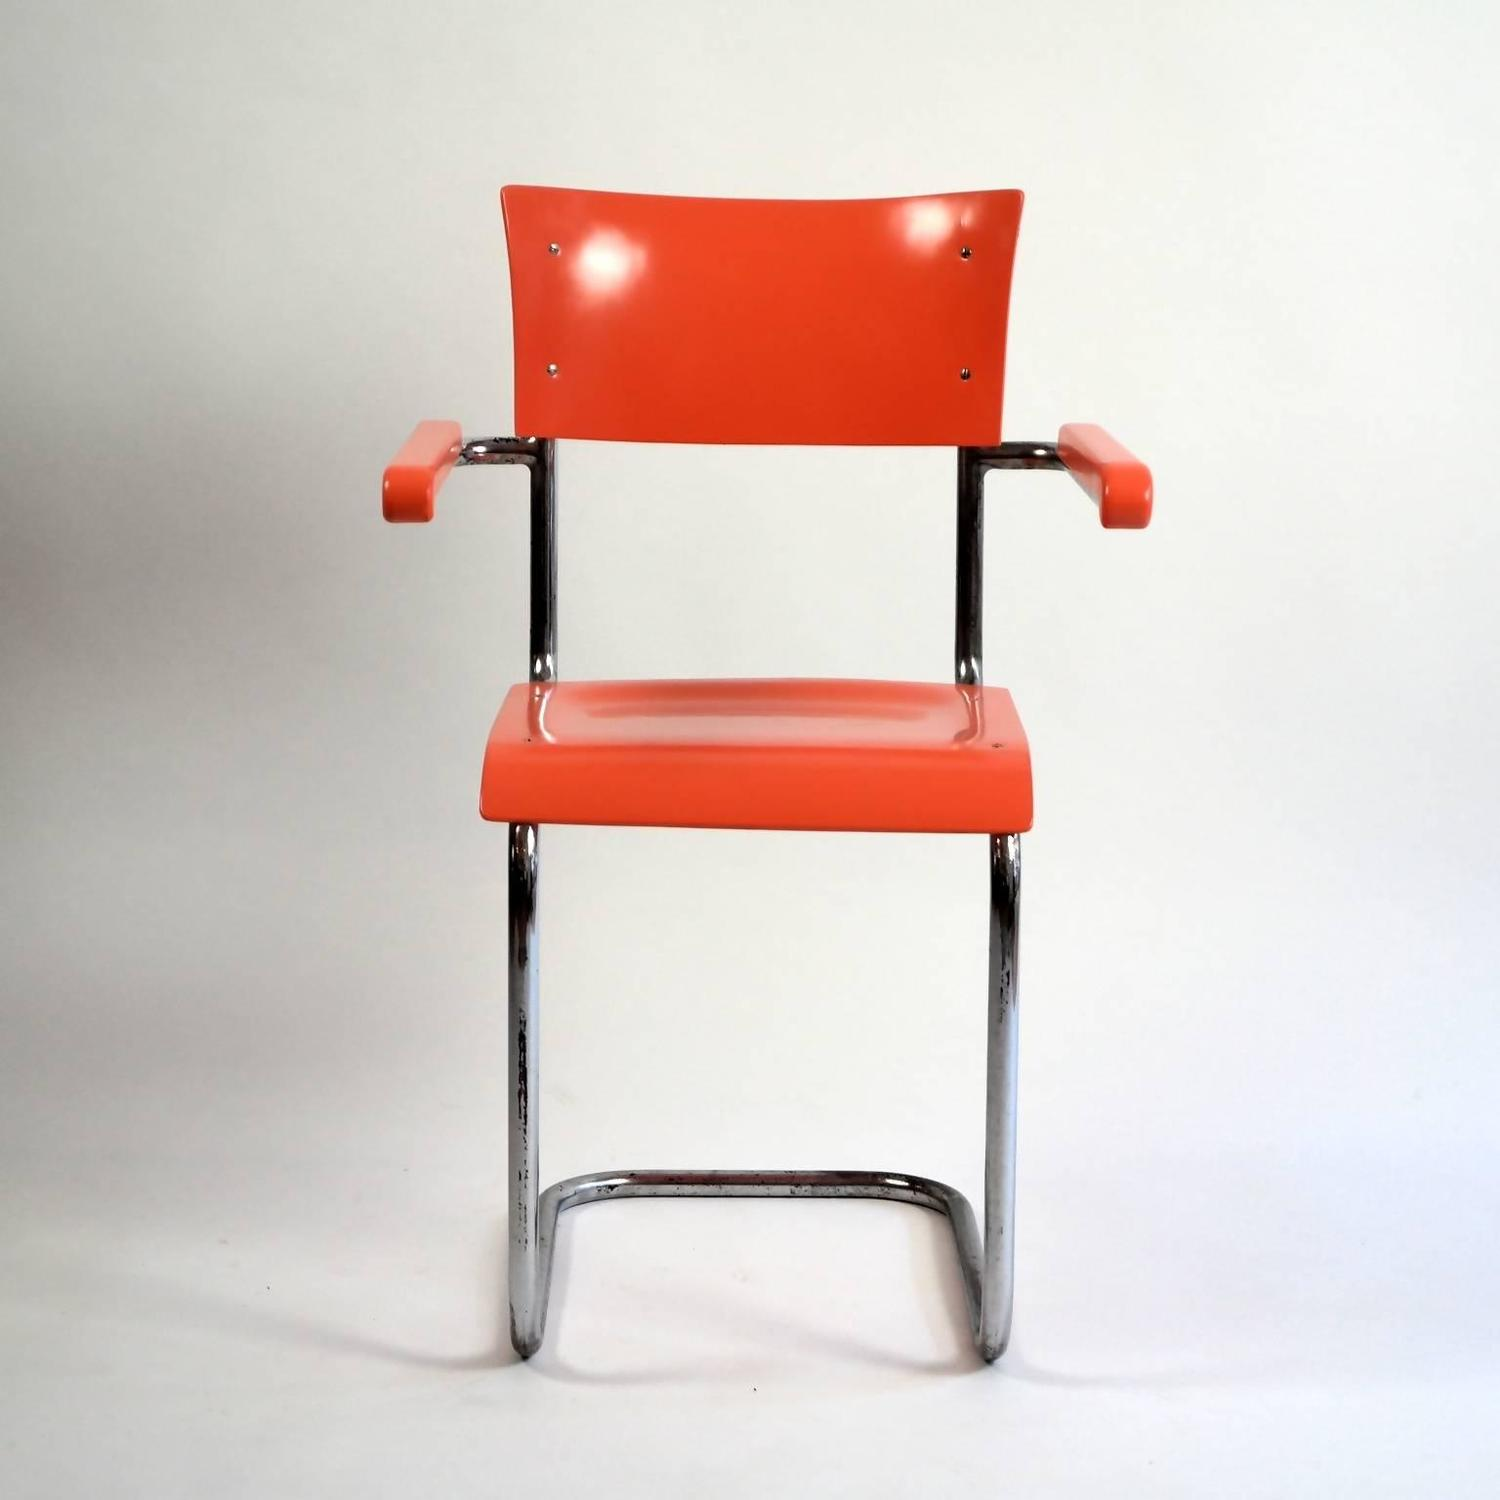 mart stam chair old blue bay hats bauhaus tubular 1920s for sale at 1stdibs